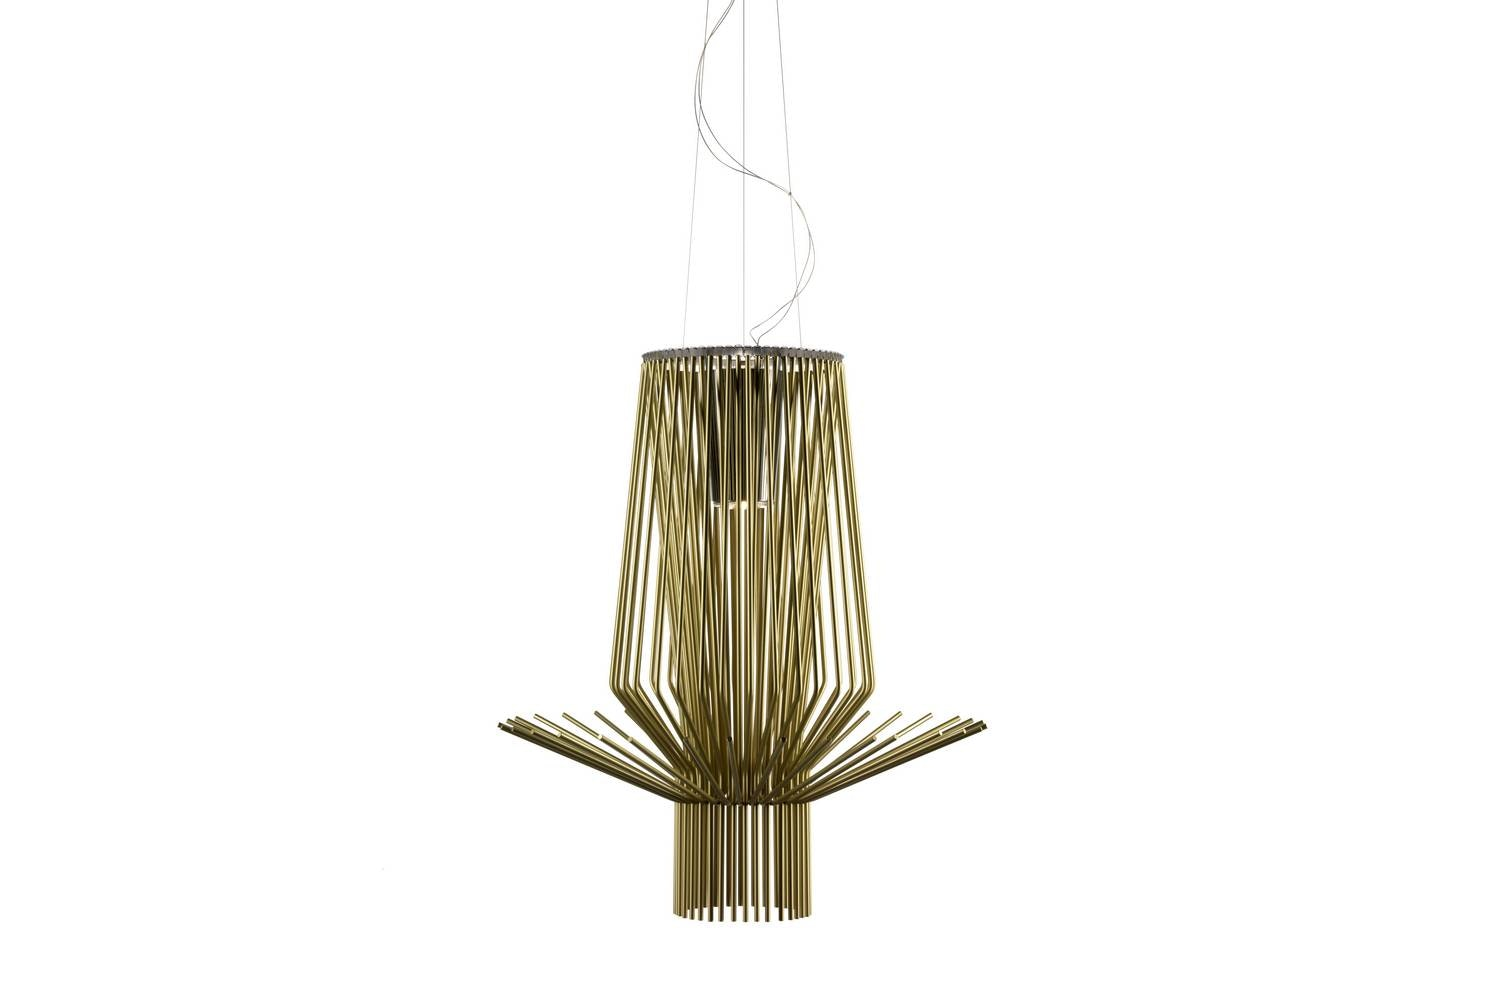 Allegretto Assai Suspension Lamp by Atelier Oi for Foscarini